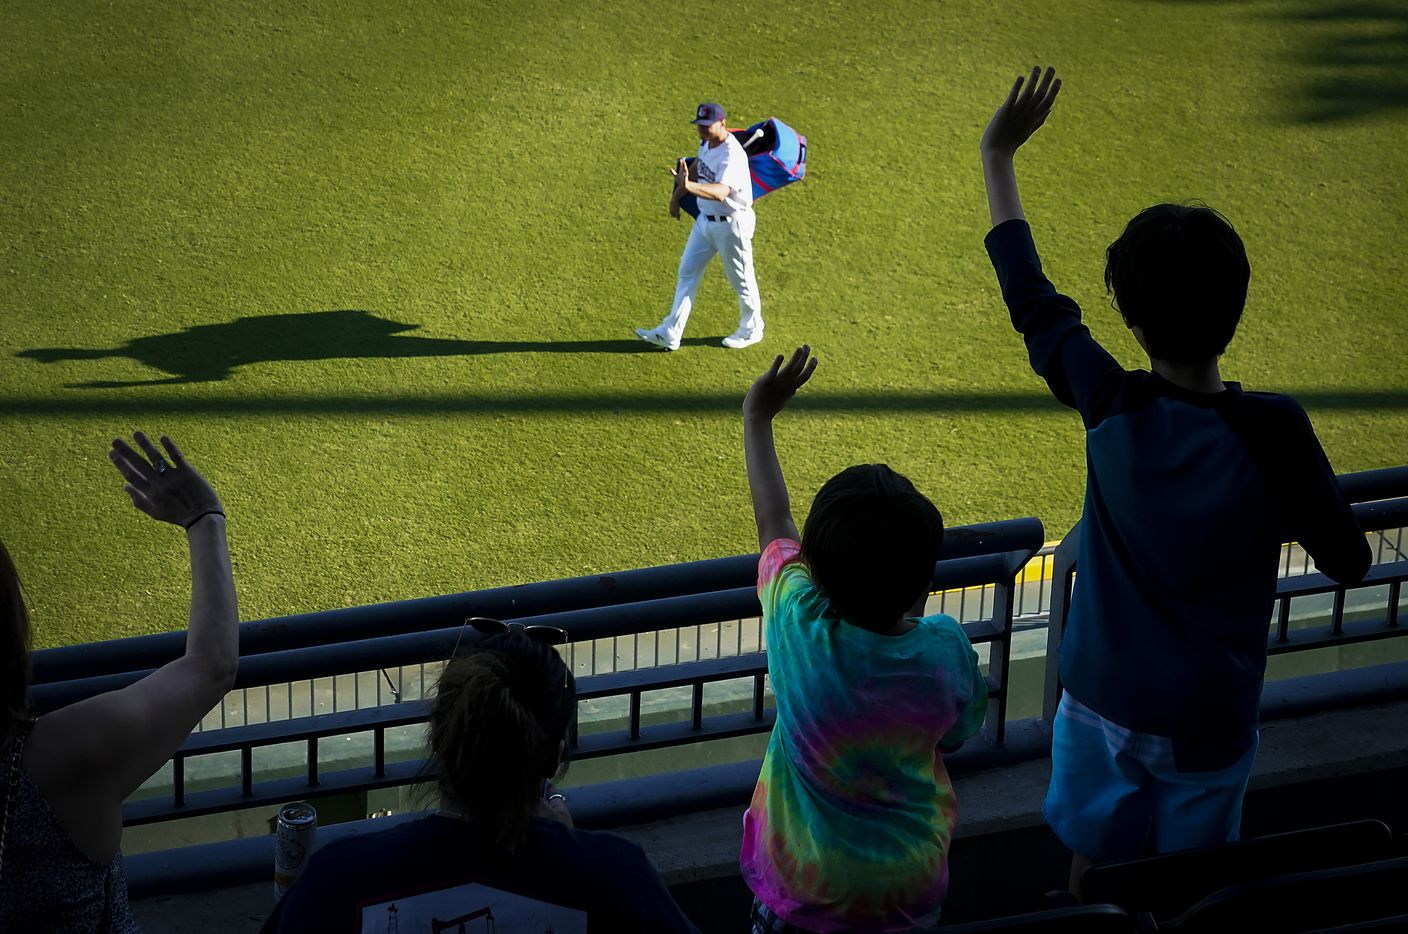 Fans wave to Round Rock Express catcher John Hicks as he takes the field to warm up at Dell Diamond for the season opener against the Oklahoma City Dodgers on Thursday, May 6, 2021, in Round Rock, Texas. It was the first gamer for the Express in 601 days due to the COVID-19 pandemic.